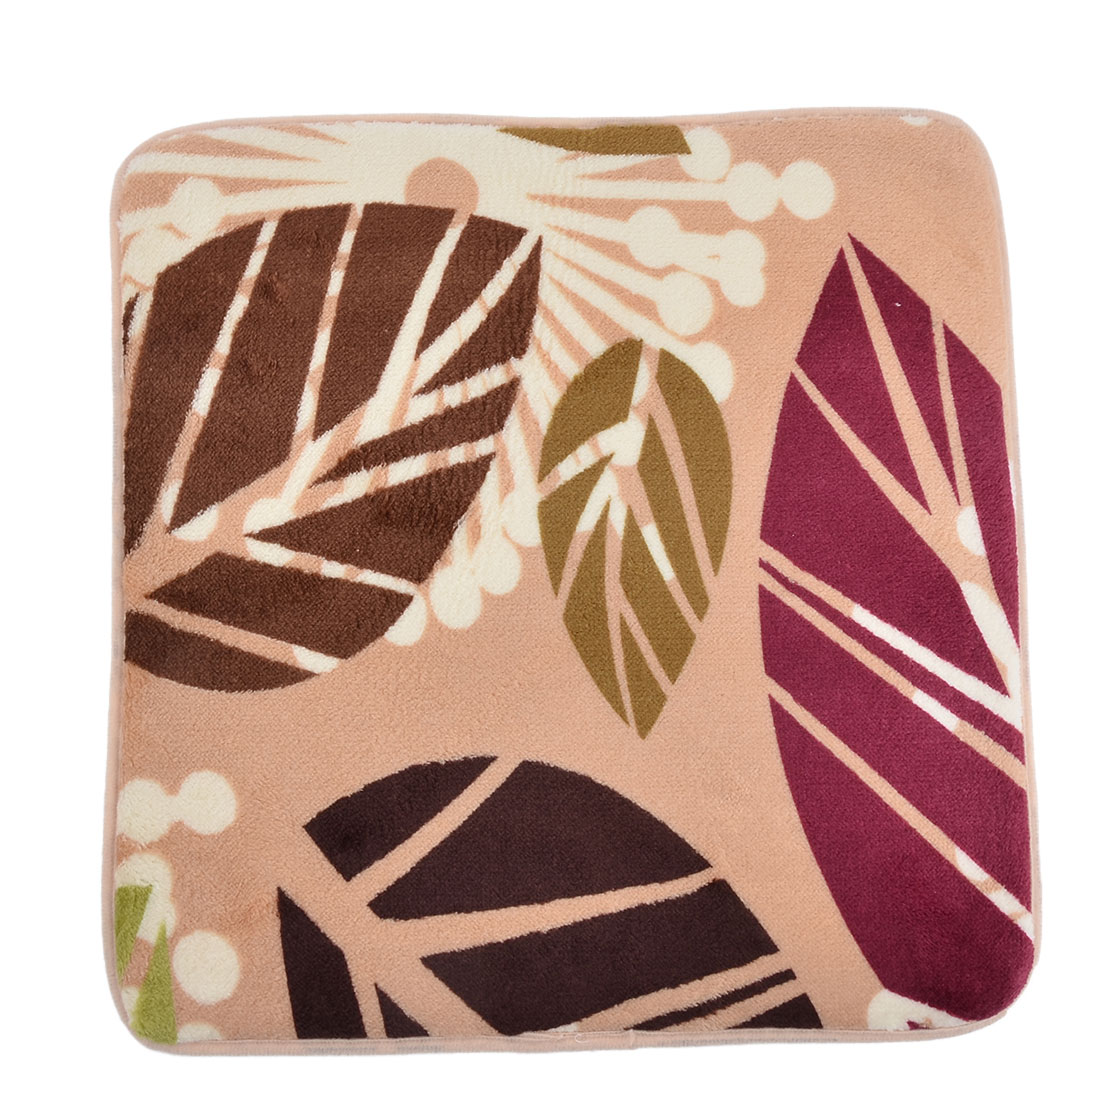 Family Living Room Coral Velvet Soft Chair Seat Decor Pad Cushion 41cm x 40cm